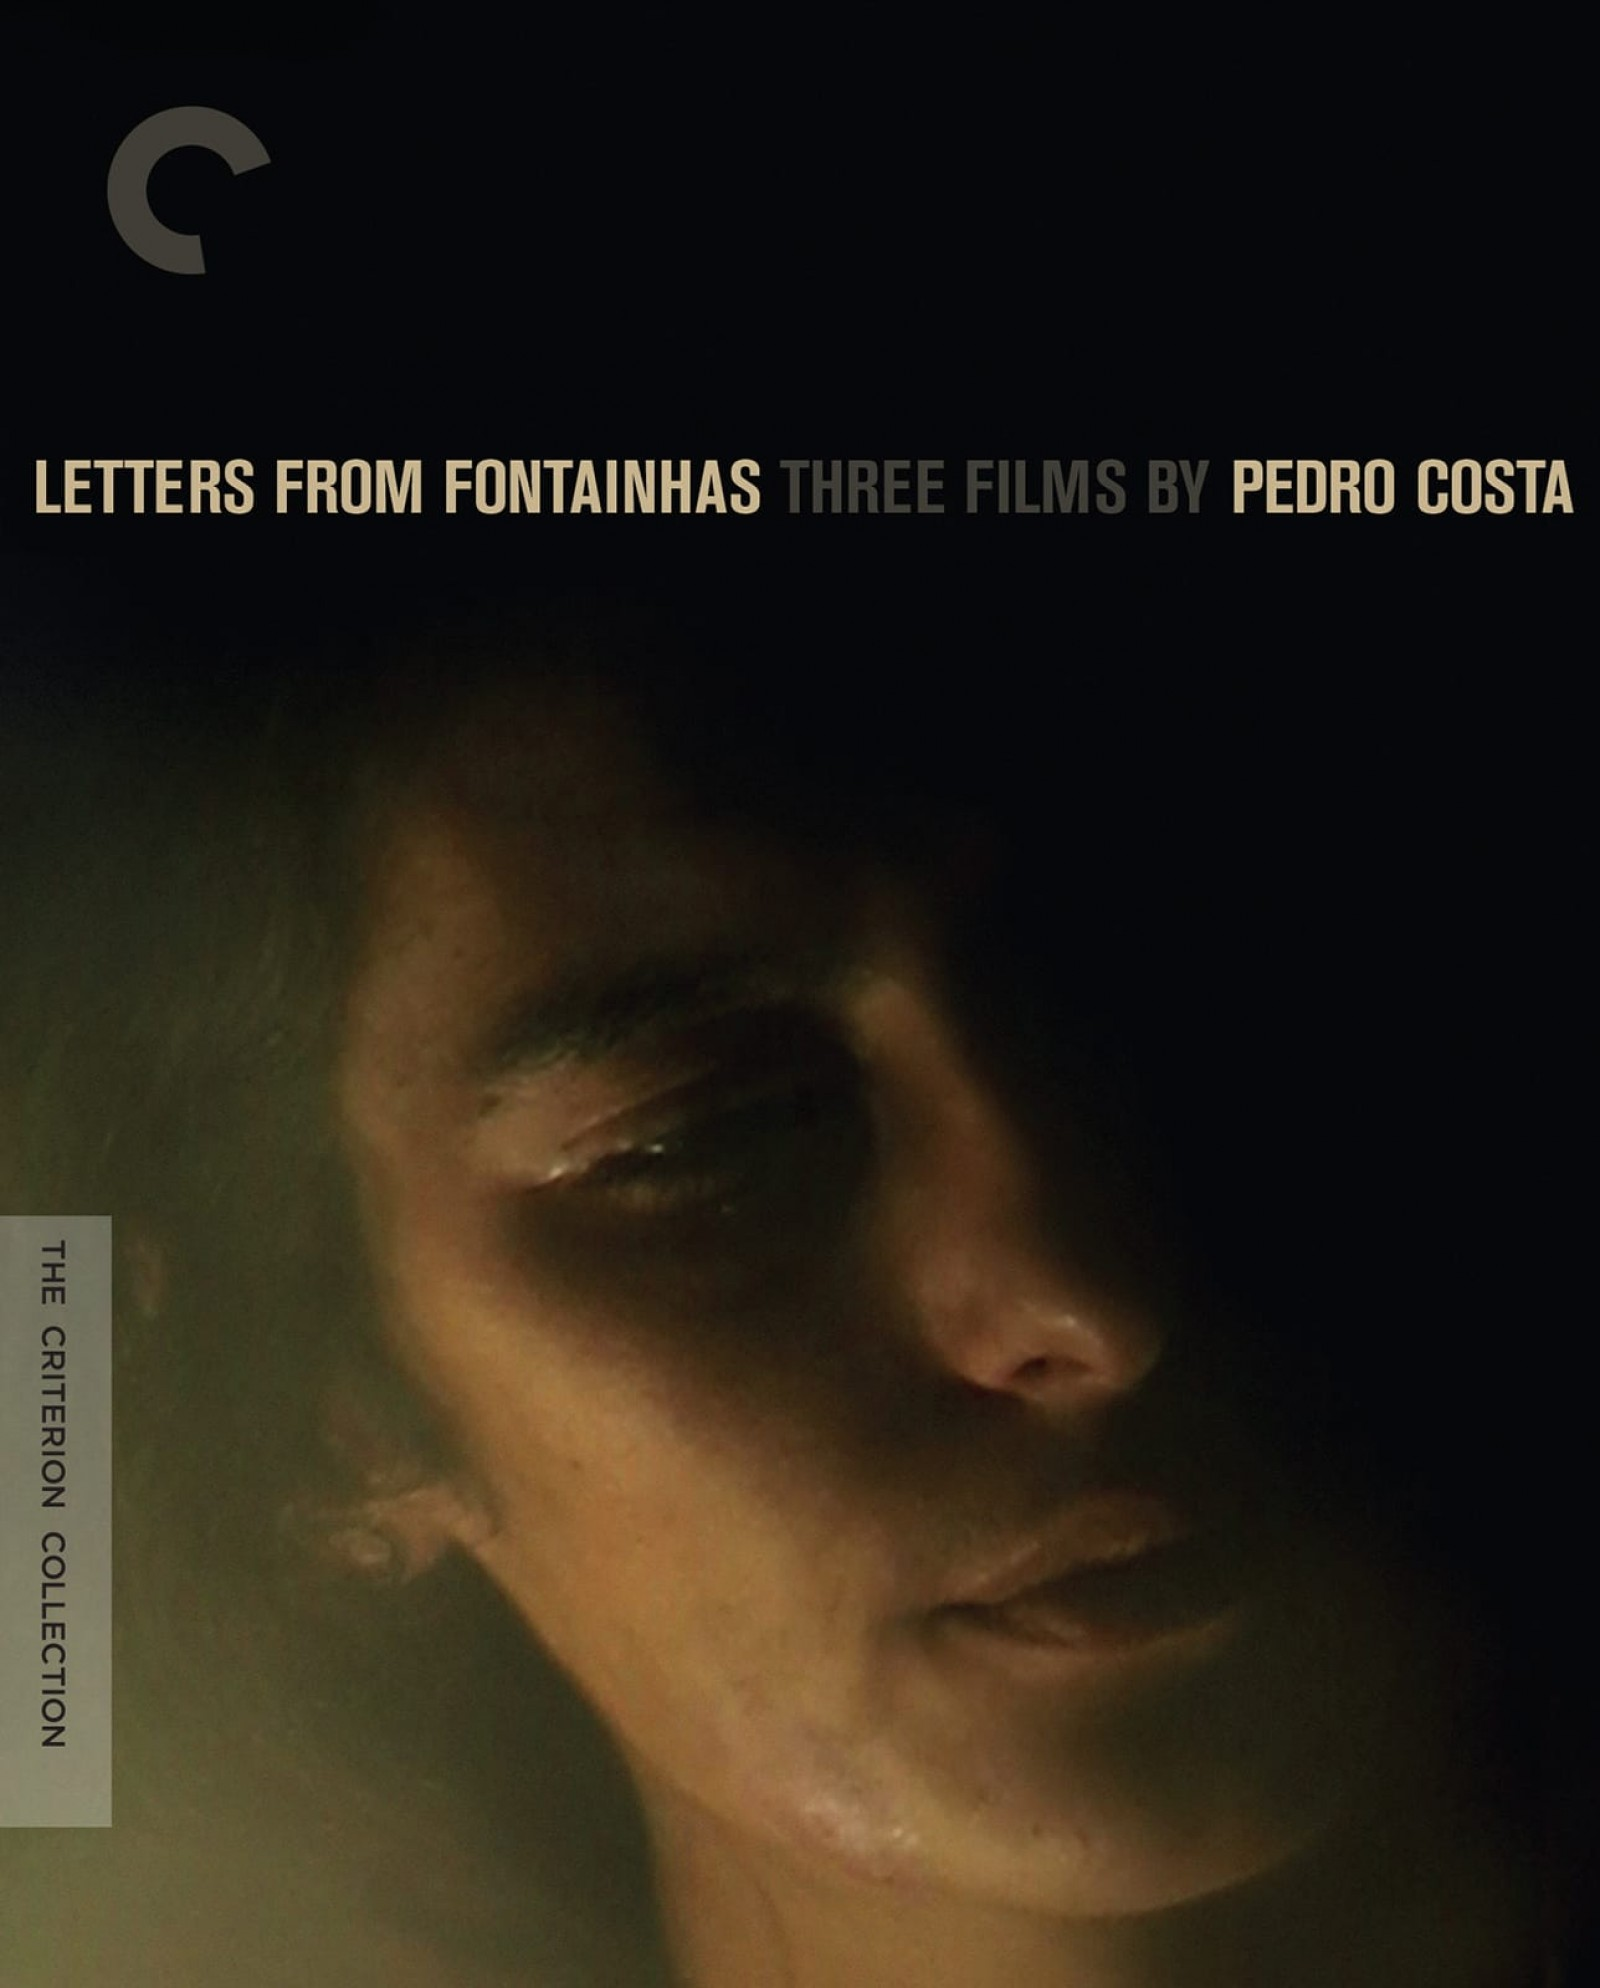 Letters from Fontainhas: Three Films by Pedro Costa